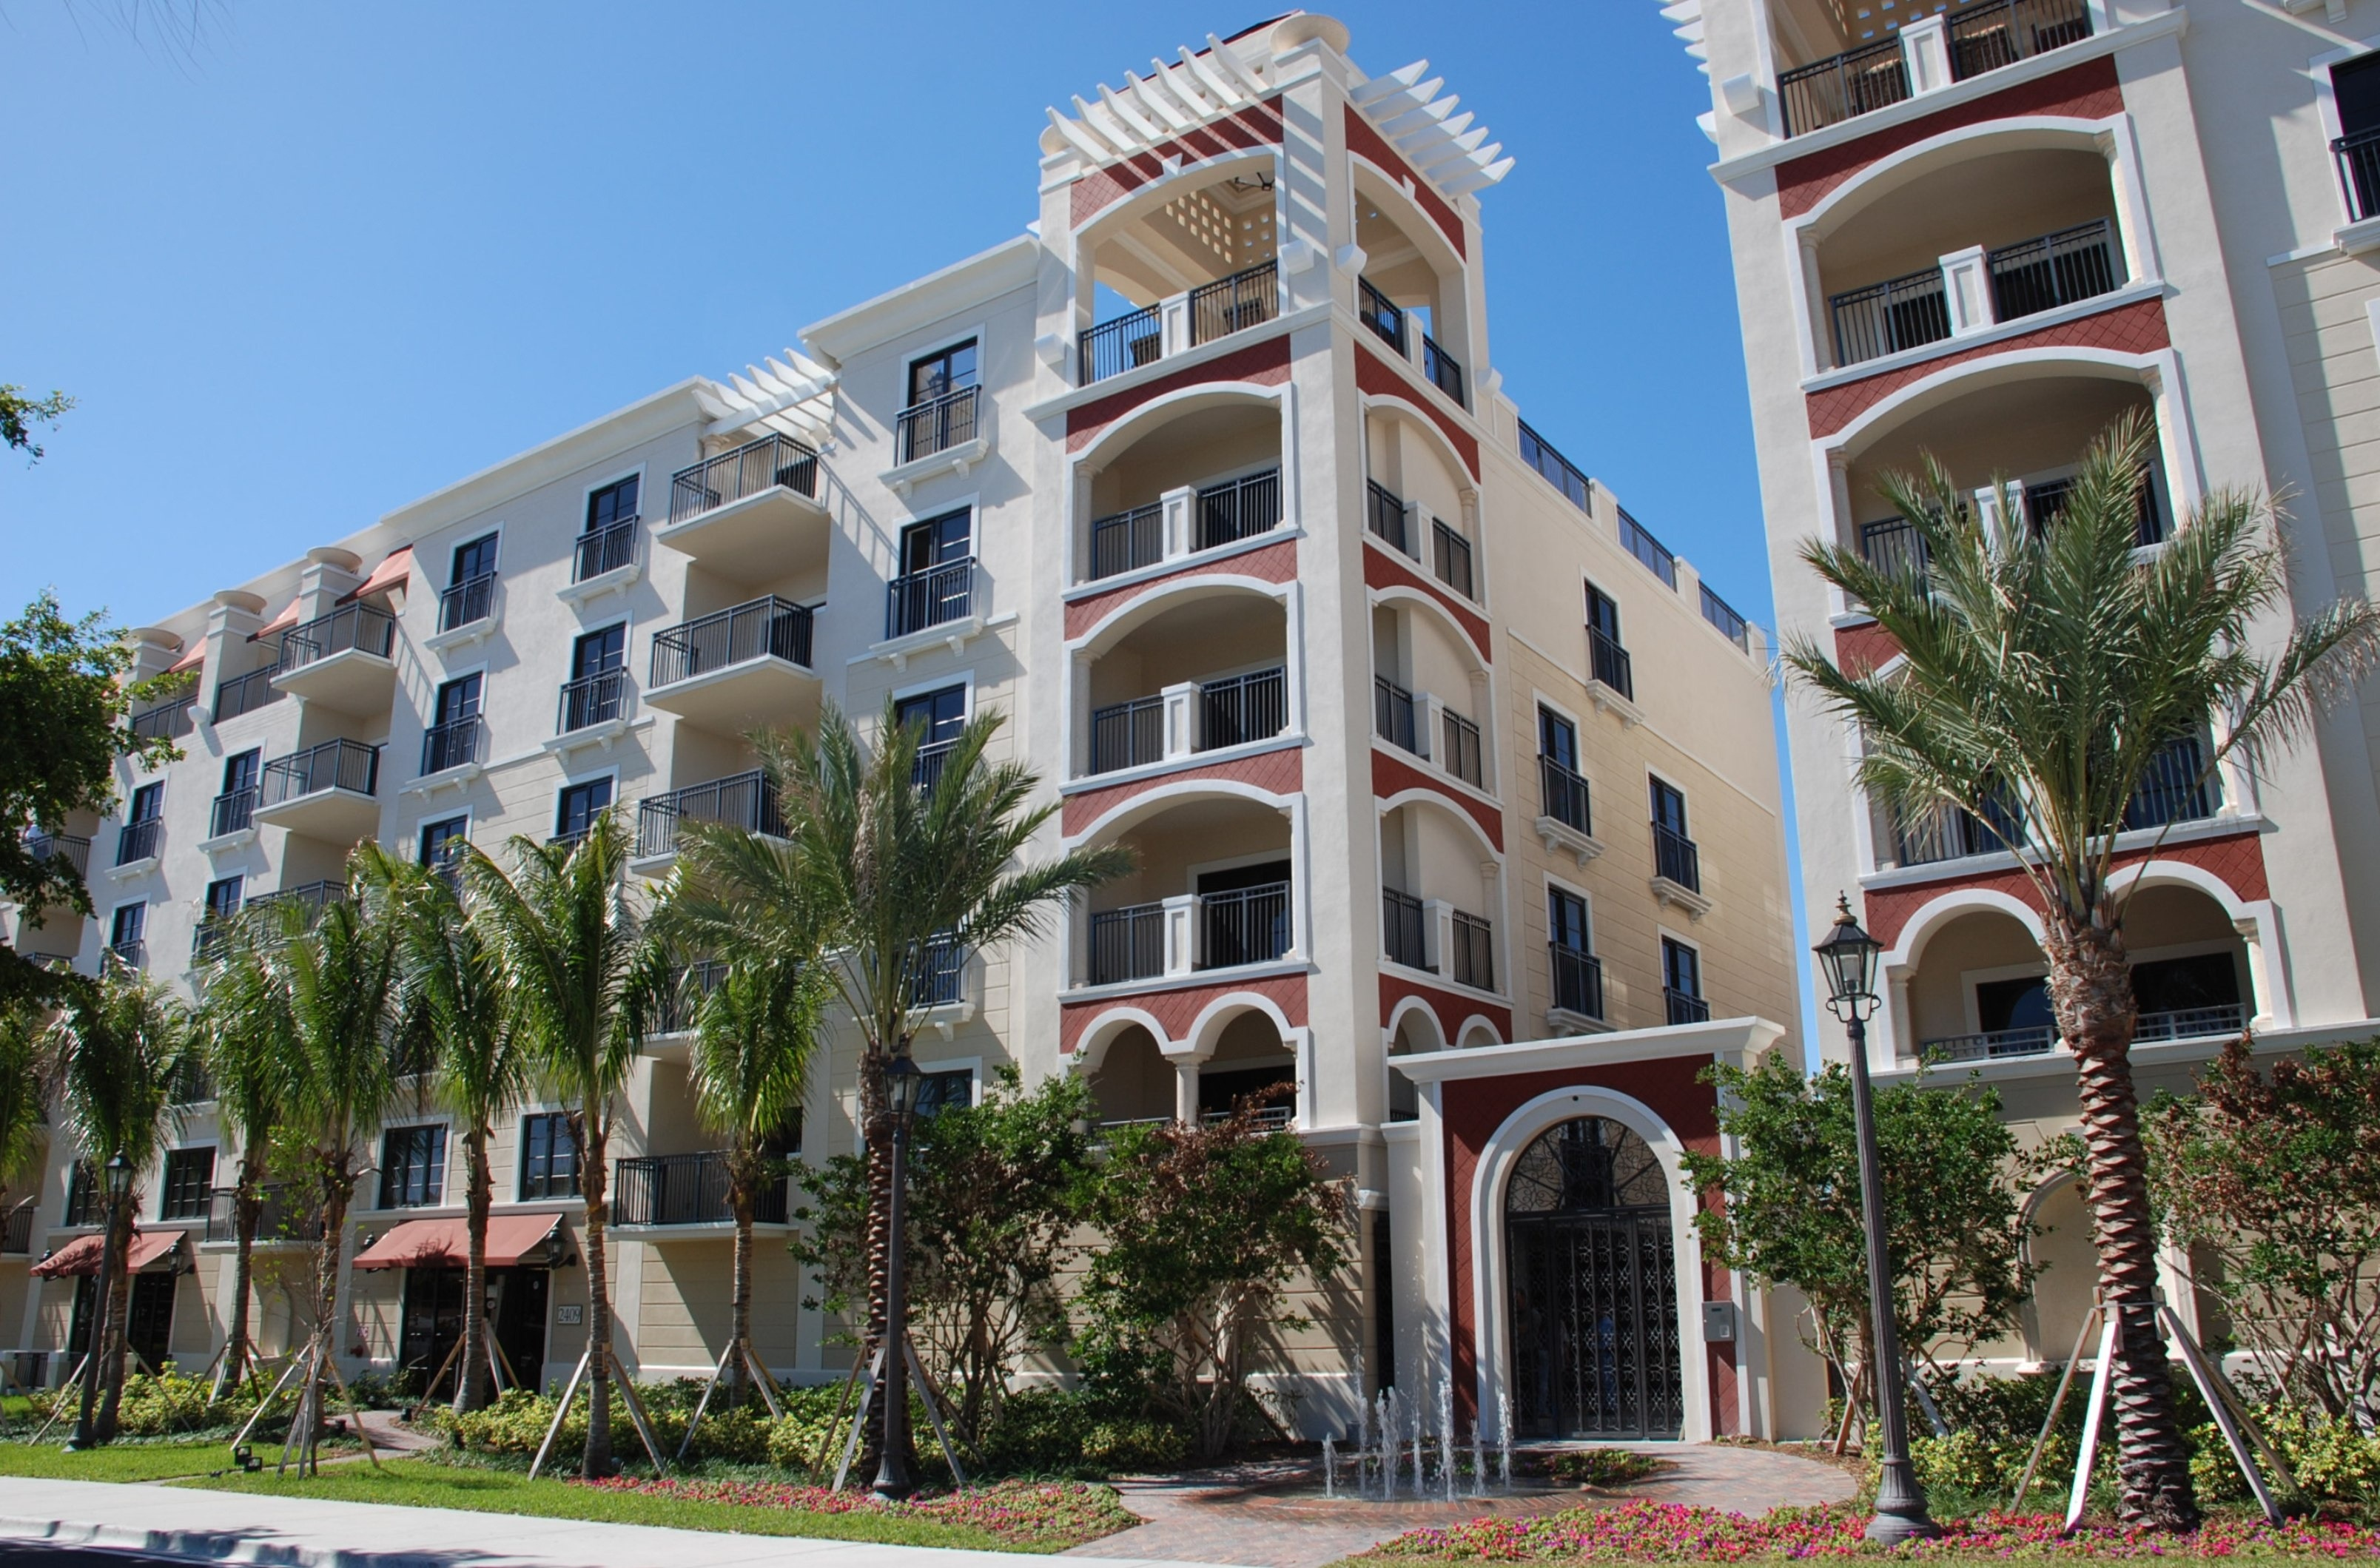 Fountains Condos - Fort Lauderdale, FL Condos for Sale